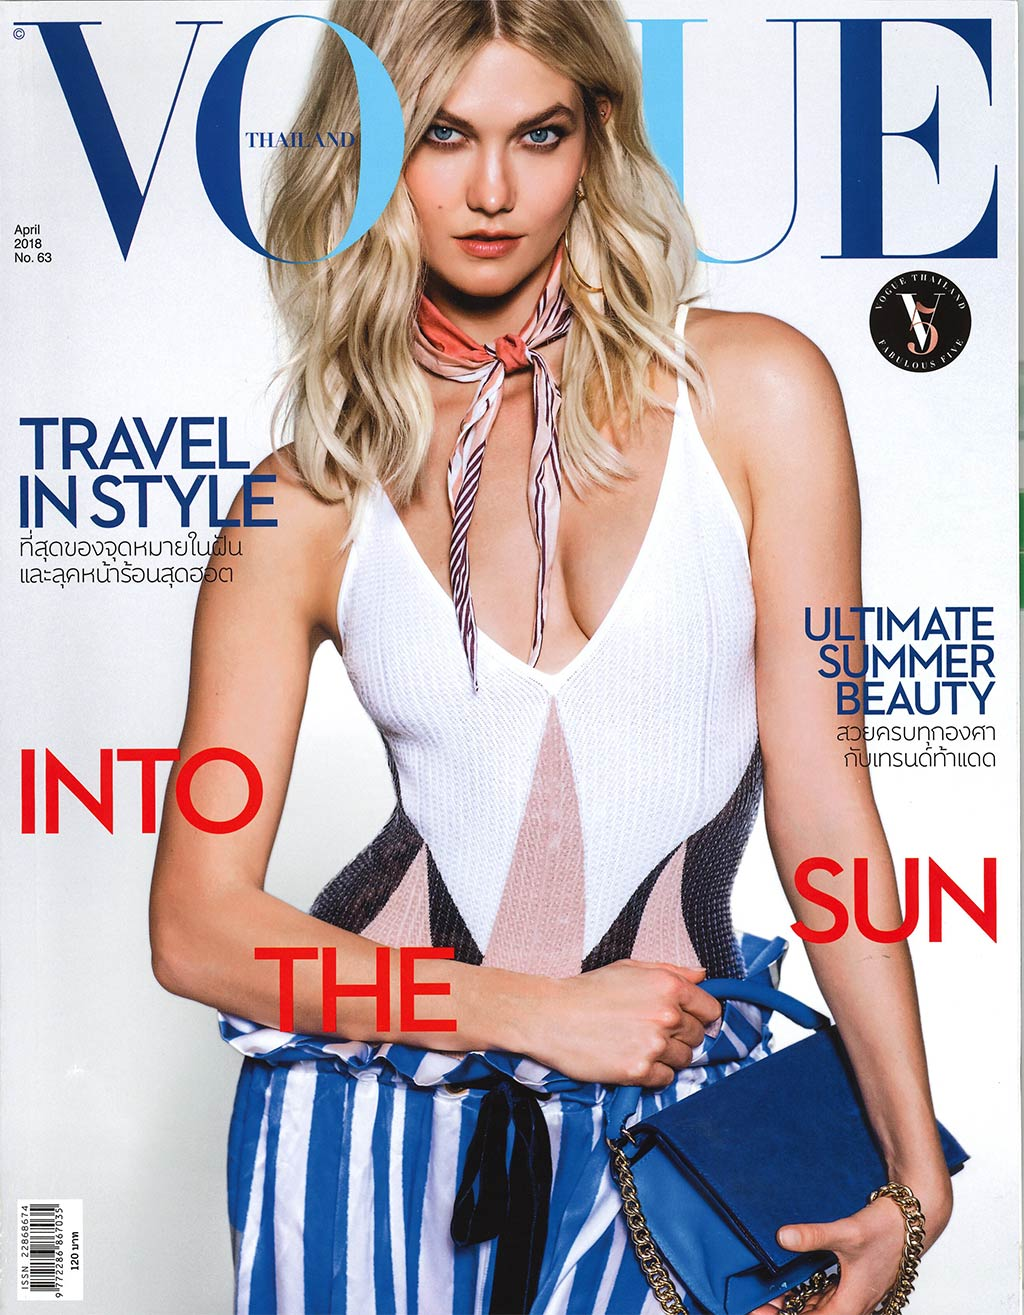 vogue-magazine-april2018-1